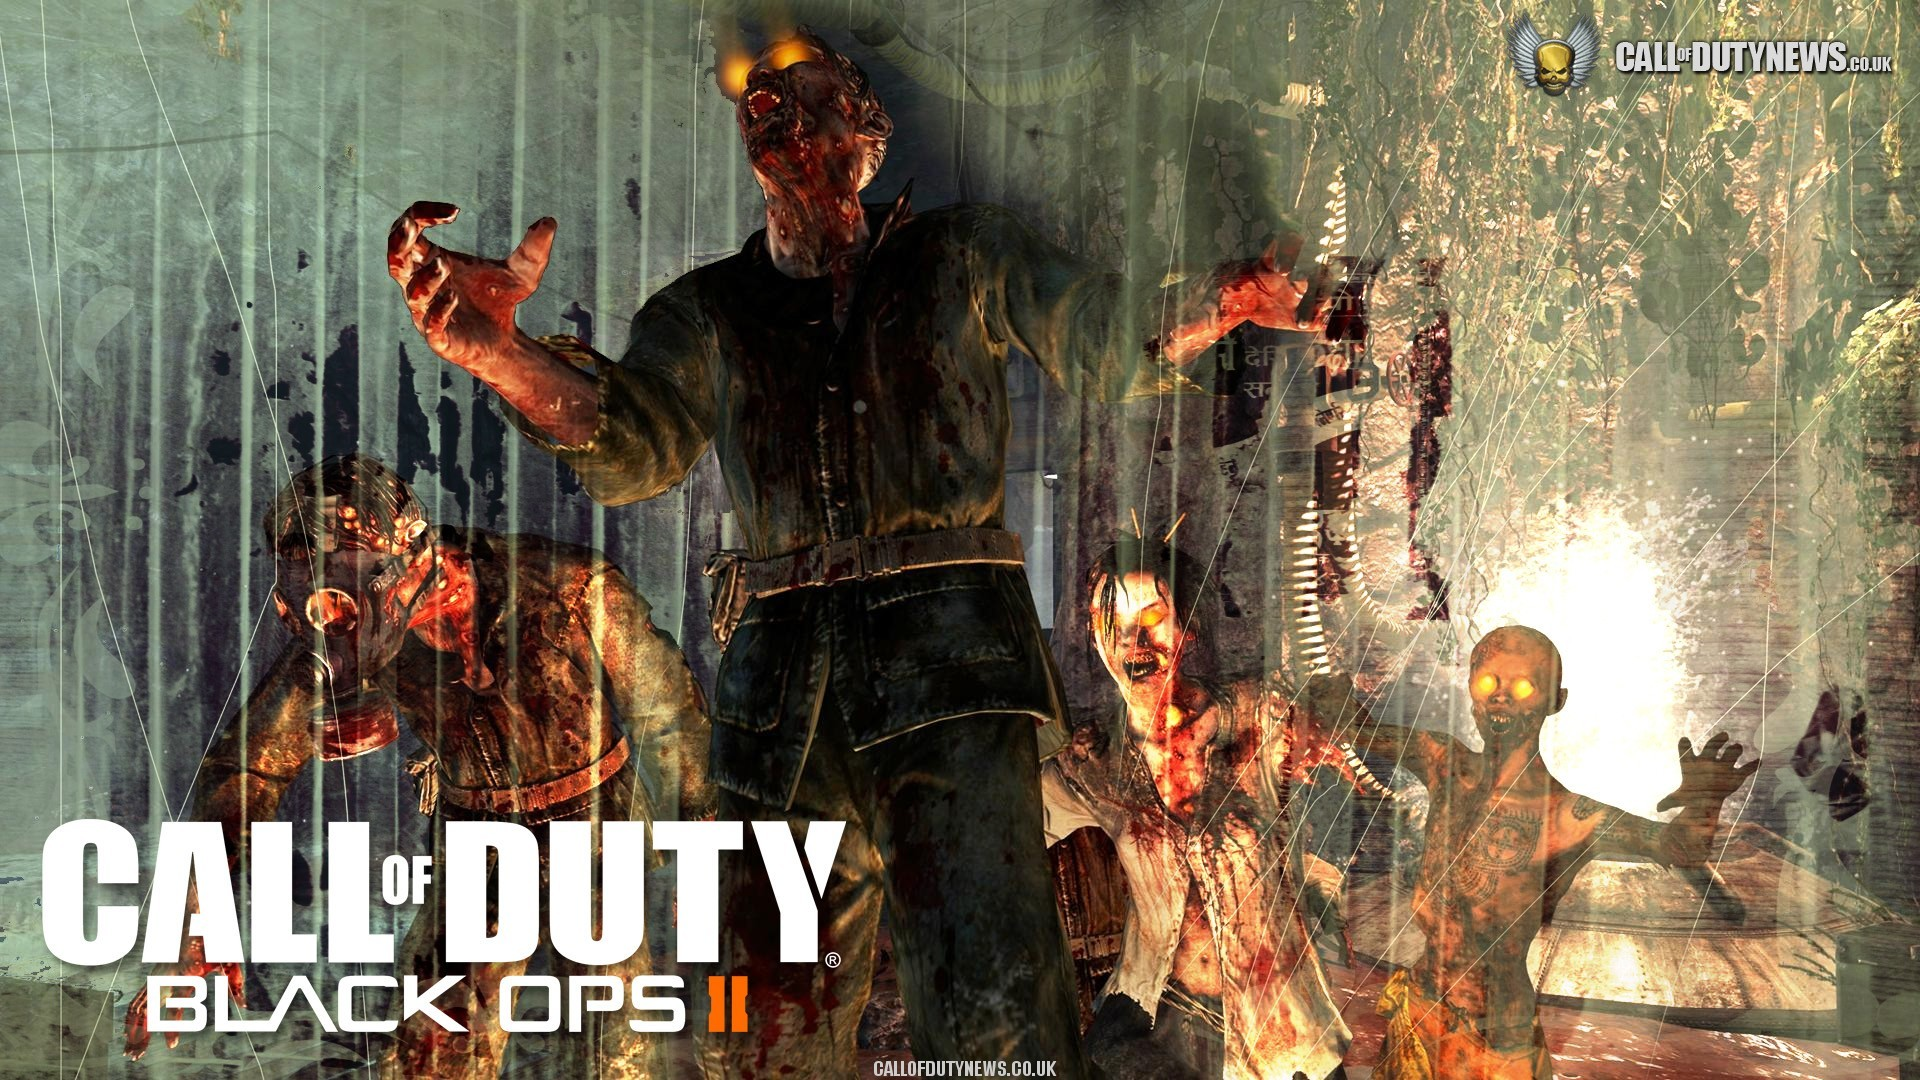 ops 2 zombies wallpaper hdCall Of Duty Black Ops 2 Zombies Preview HD .